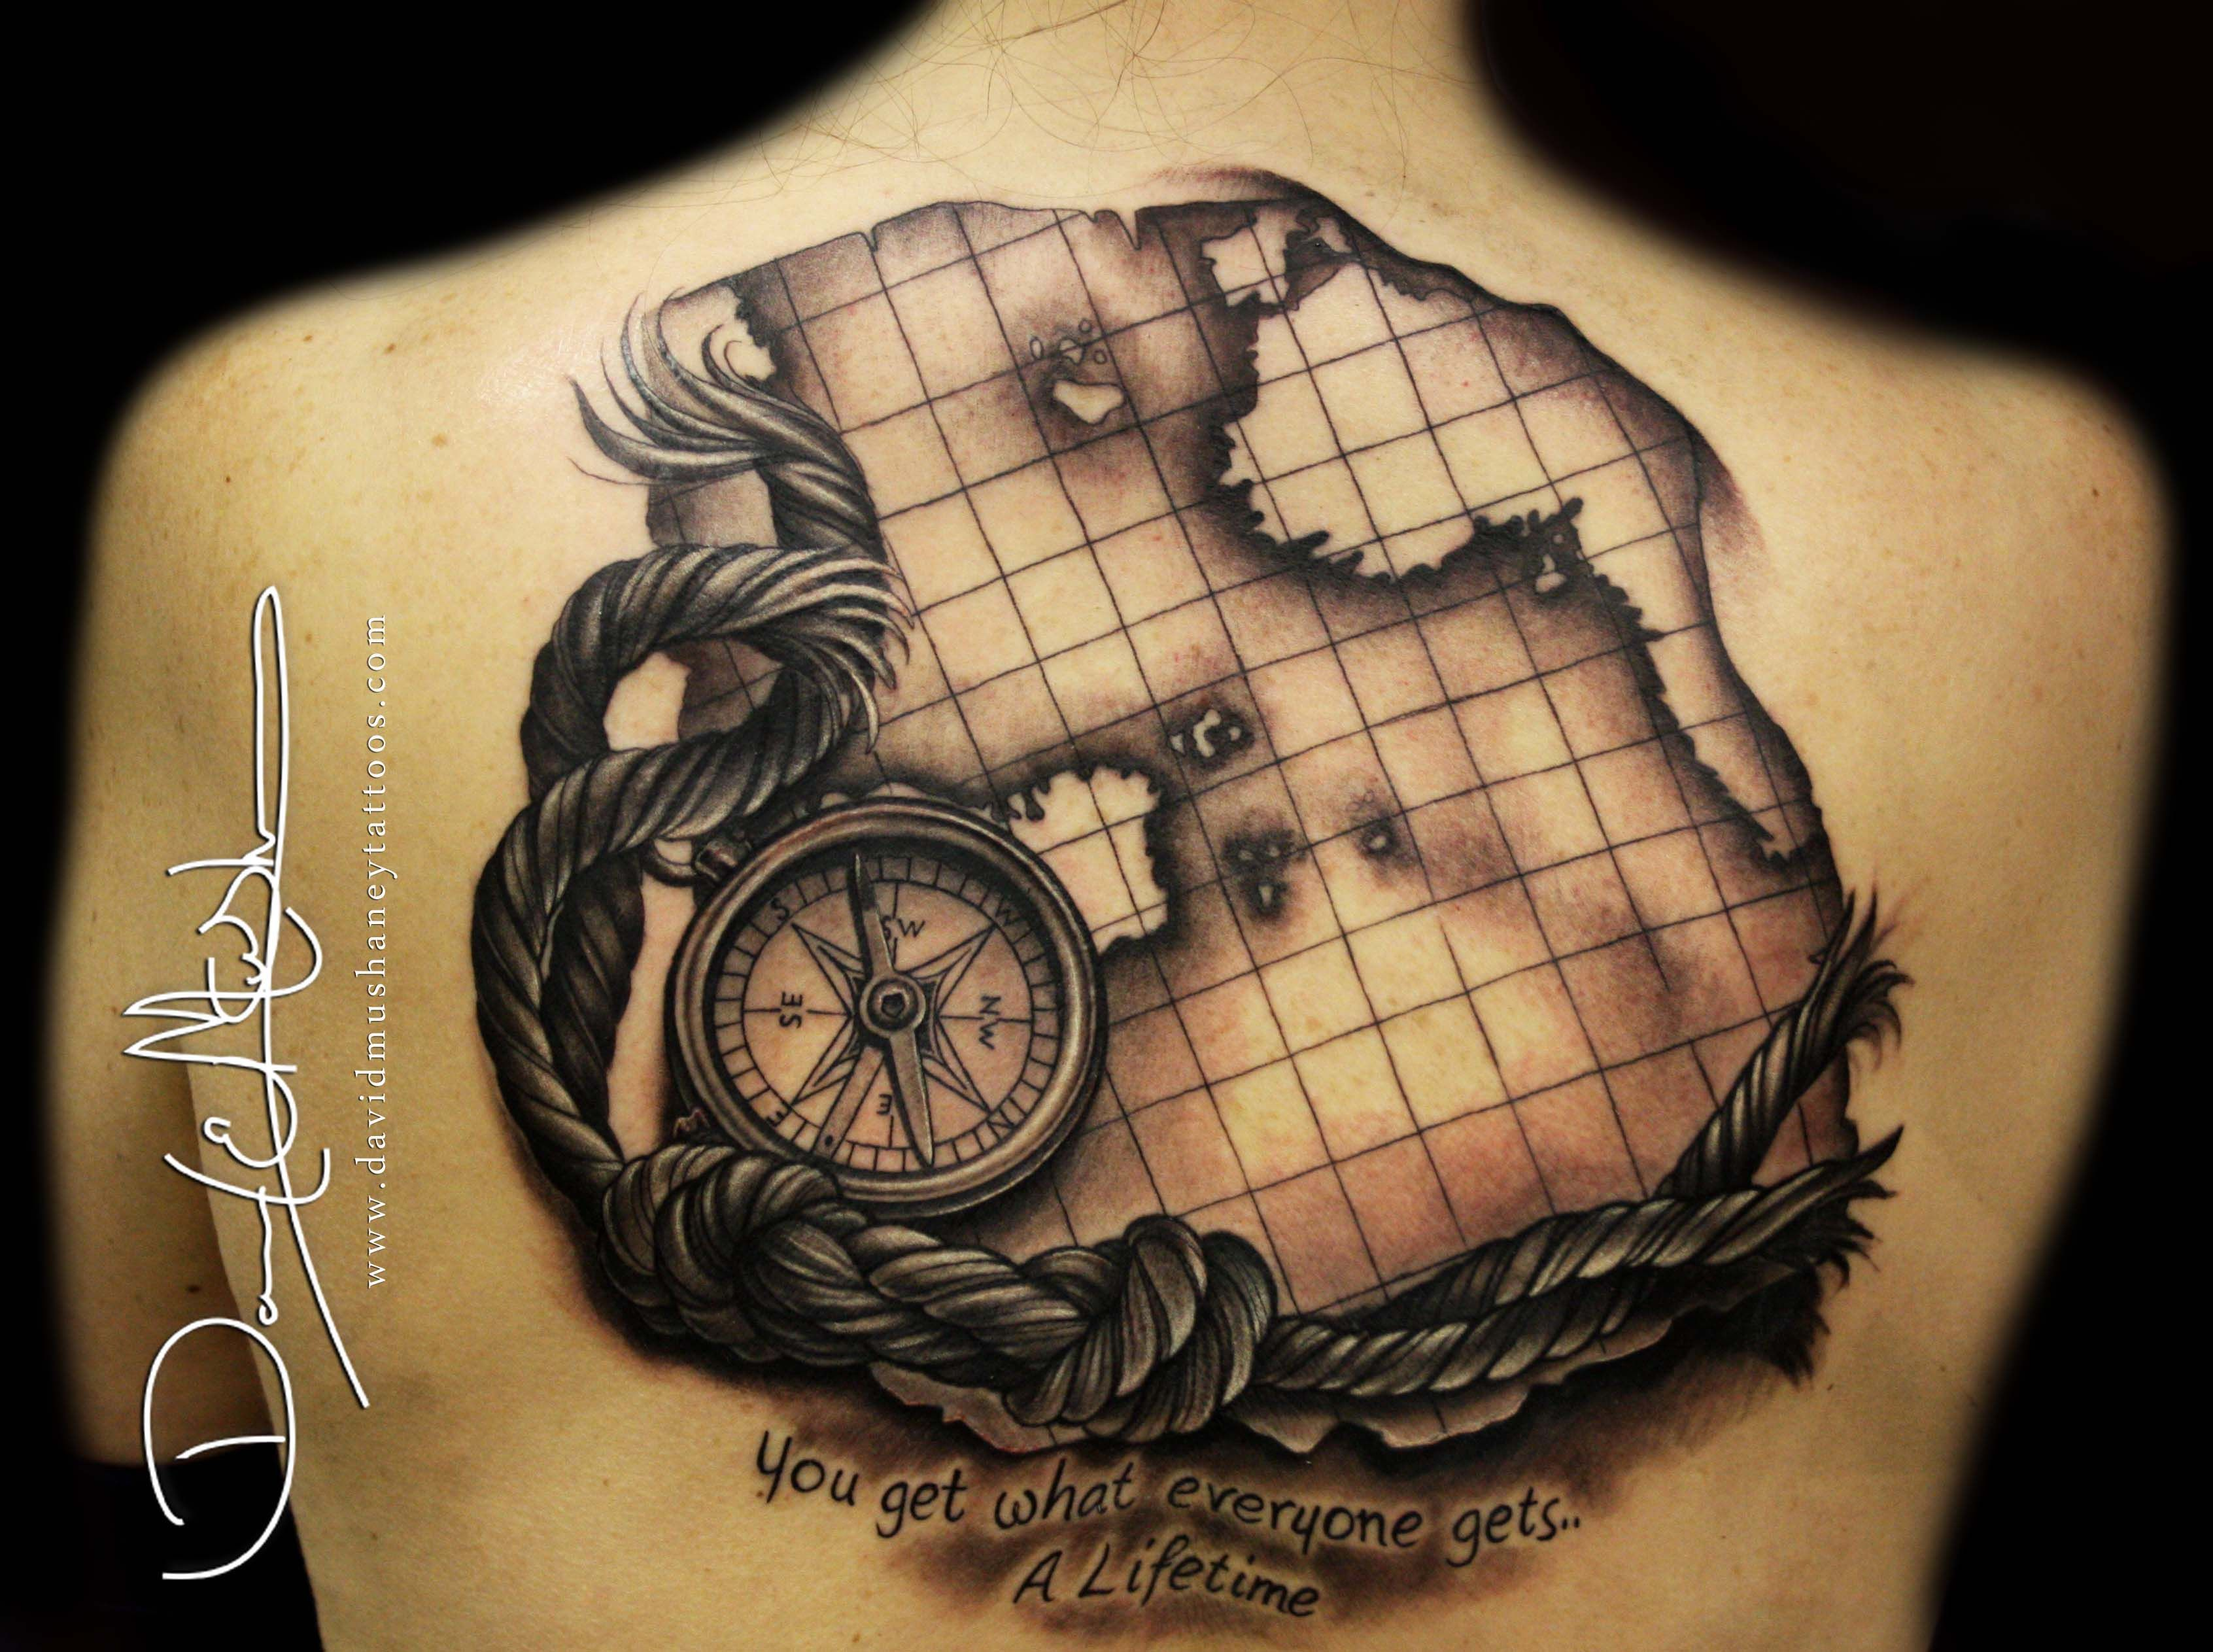 beautiful world map tattoo done by david mushaney artist and owner of rebel muse tattoo in. Black Bedroom Furniture Sets. Home Design Ideas